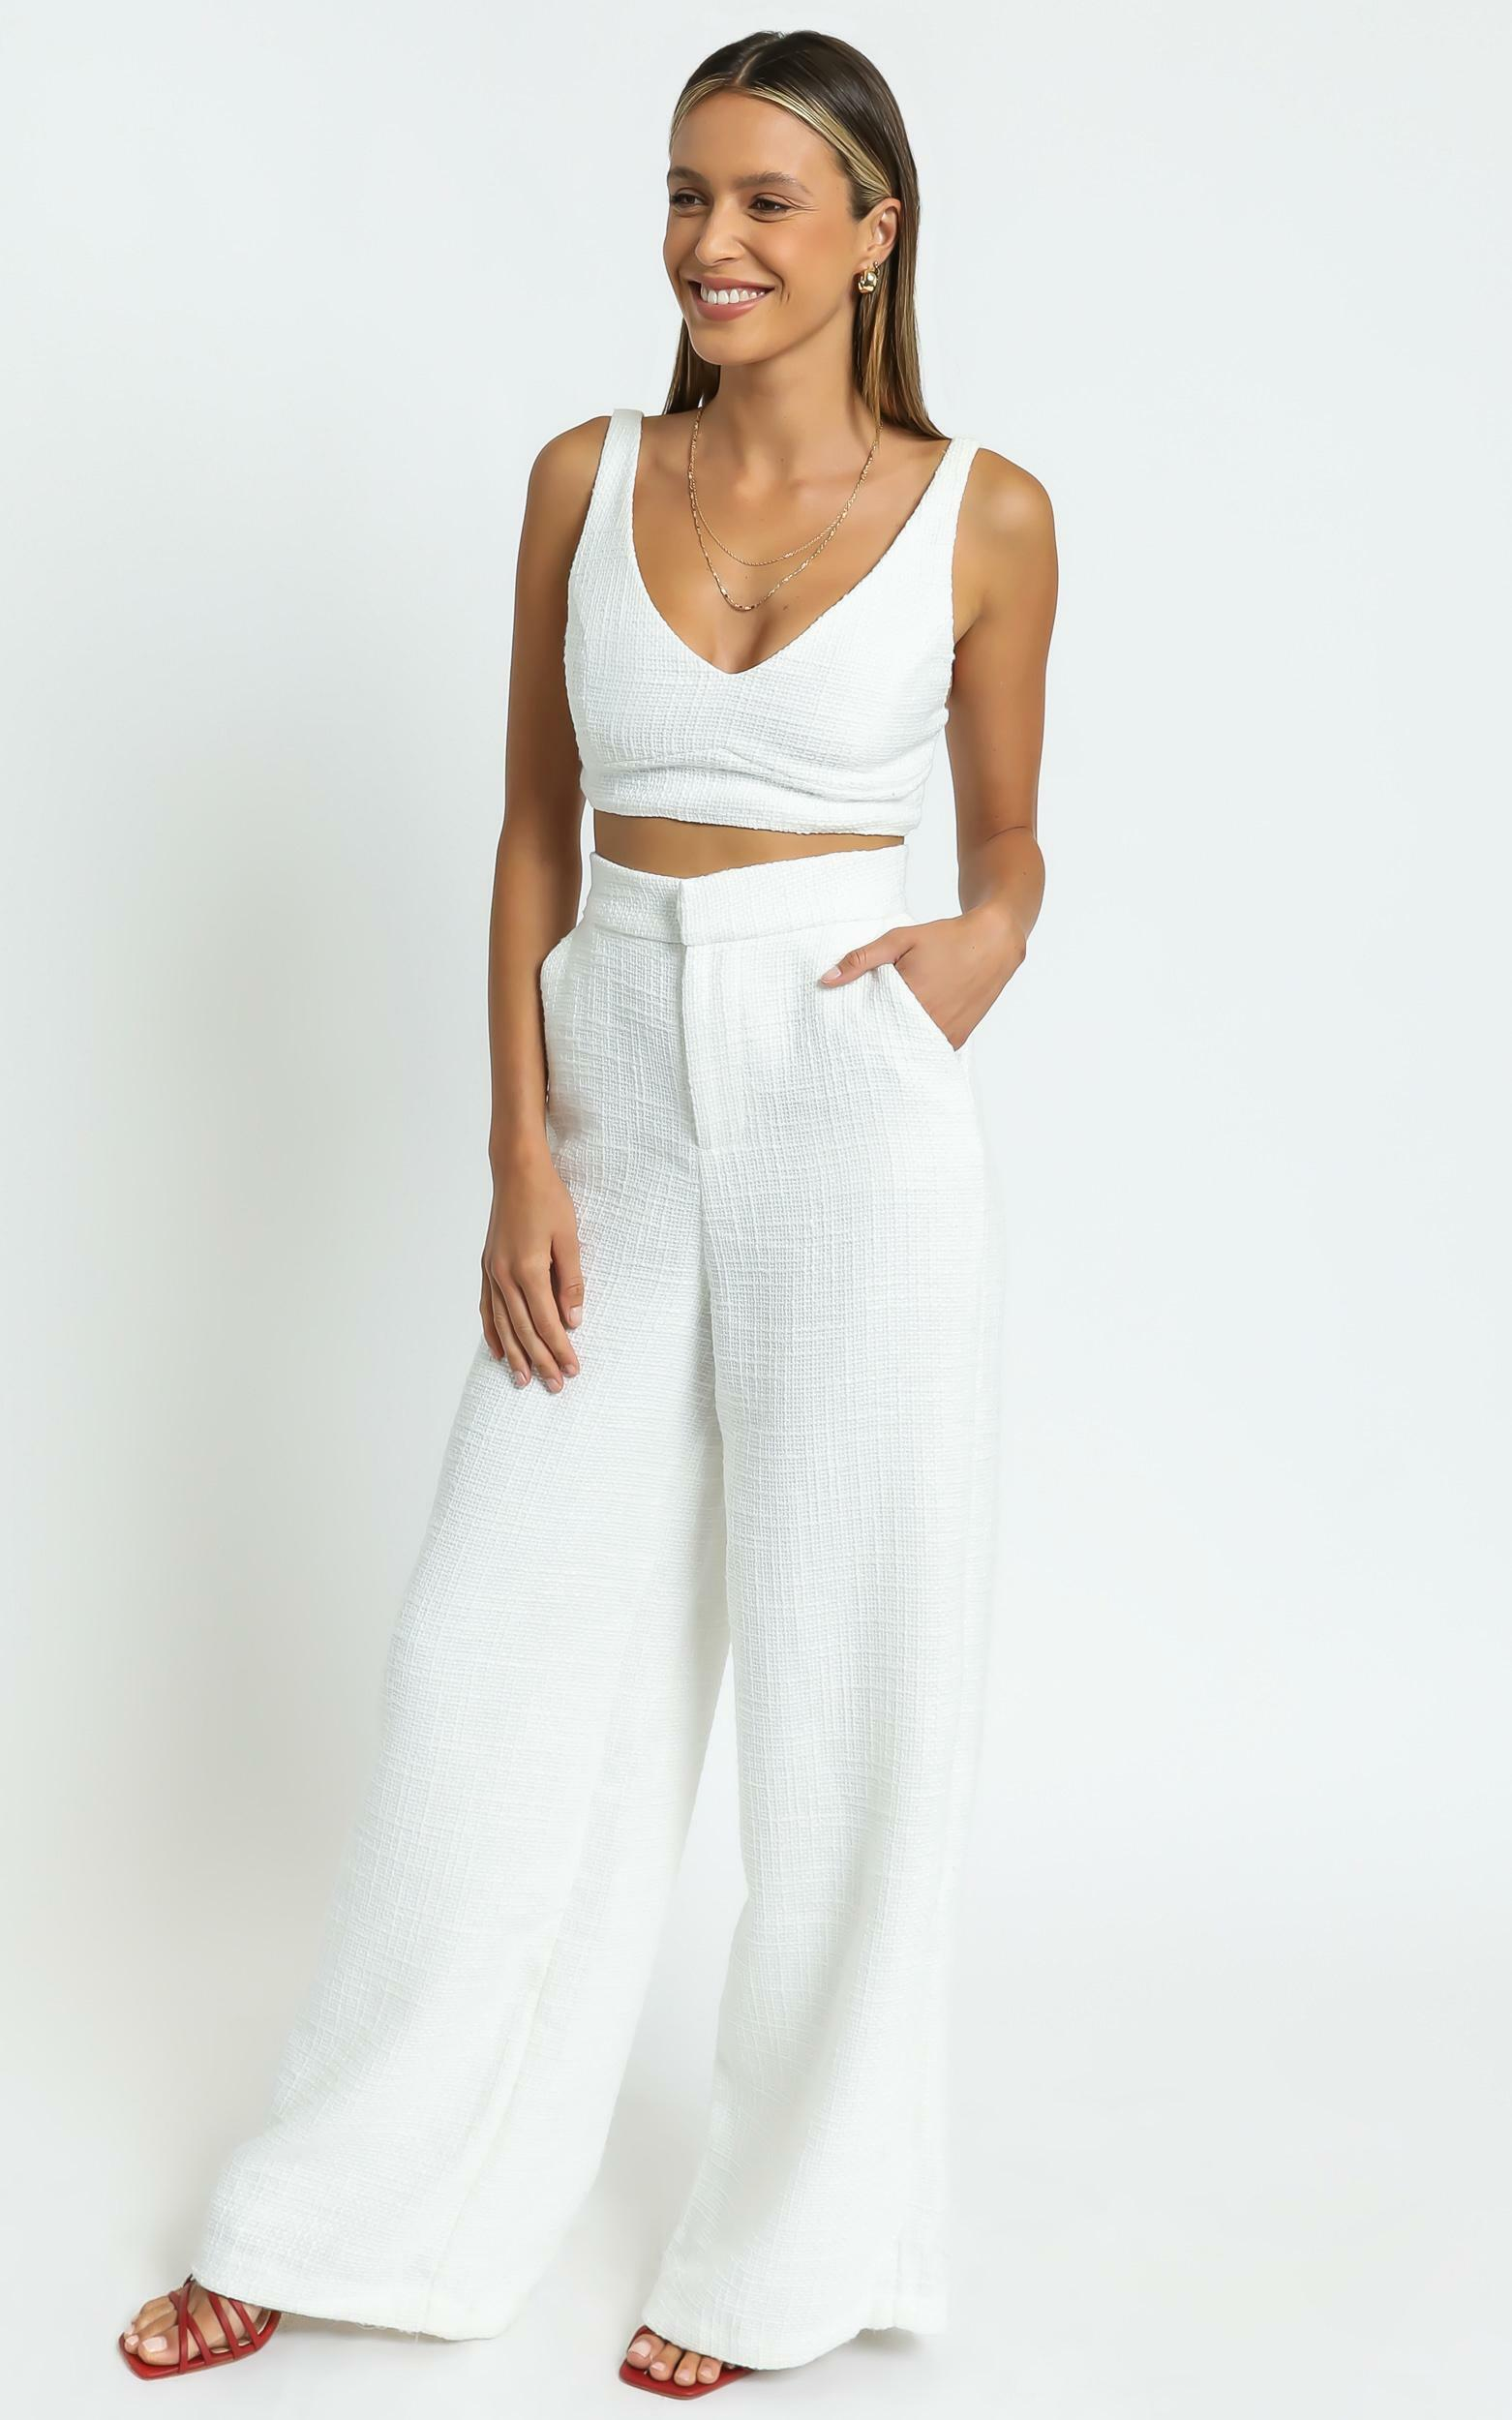 Adelaide Two Piece Set in White - 06, WHT4, hi-res image number null